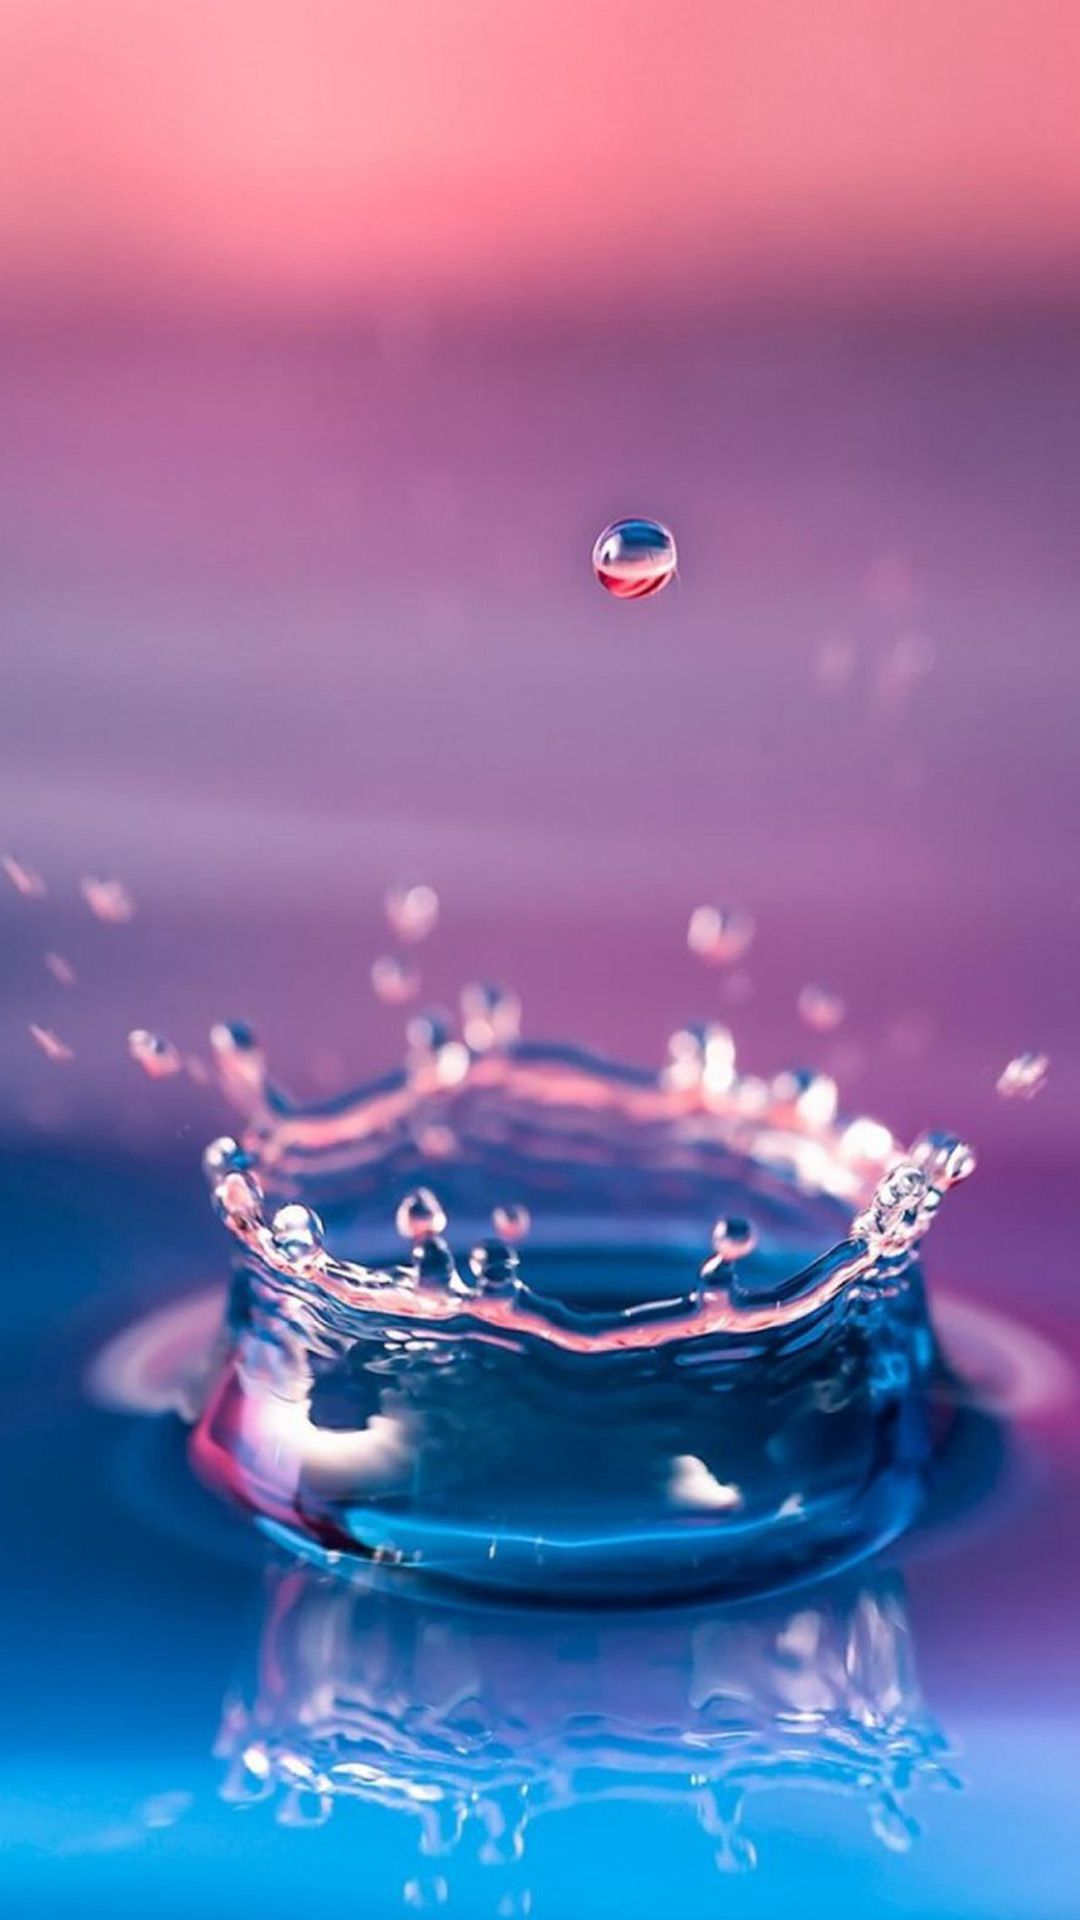 Free Wallpaper Downloads Free Download Samsung Galaxy S5 Wallpaper With Water Drop Picture